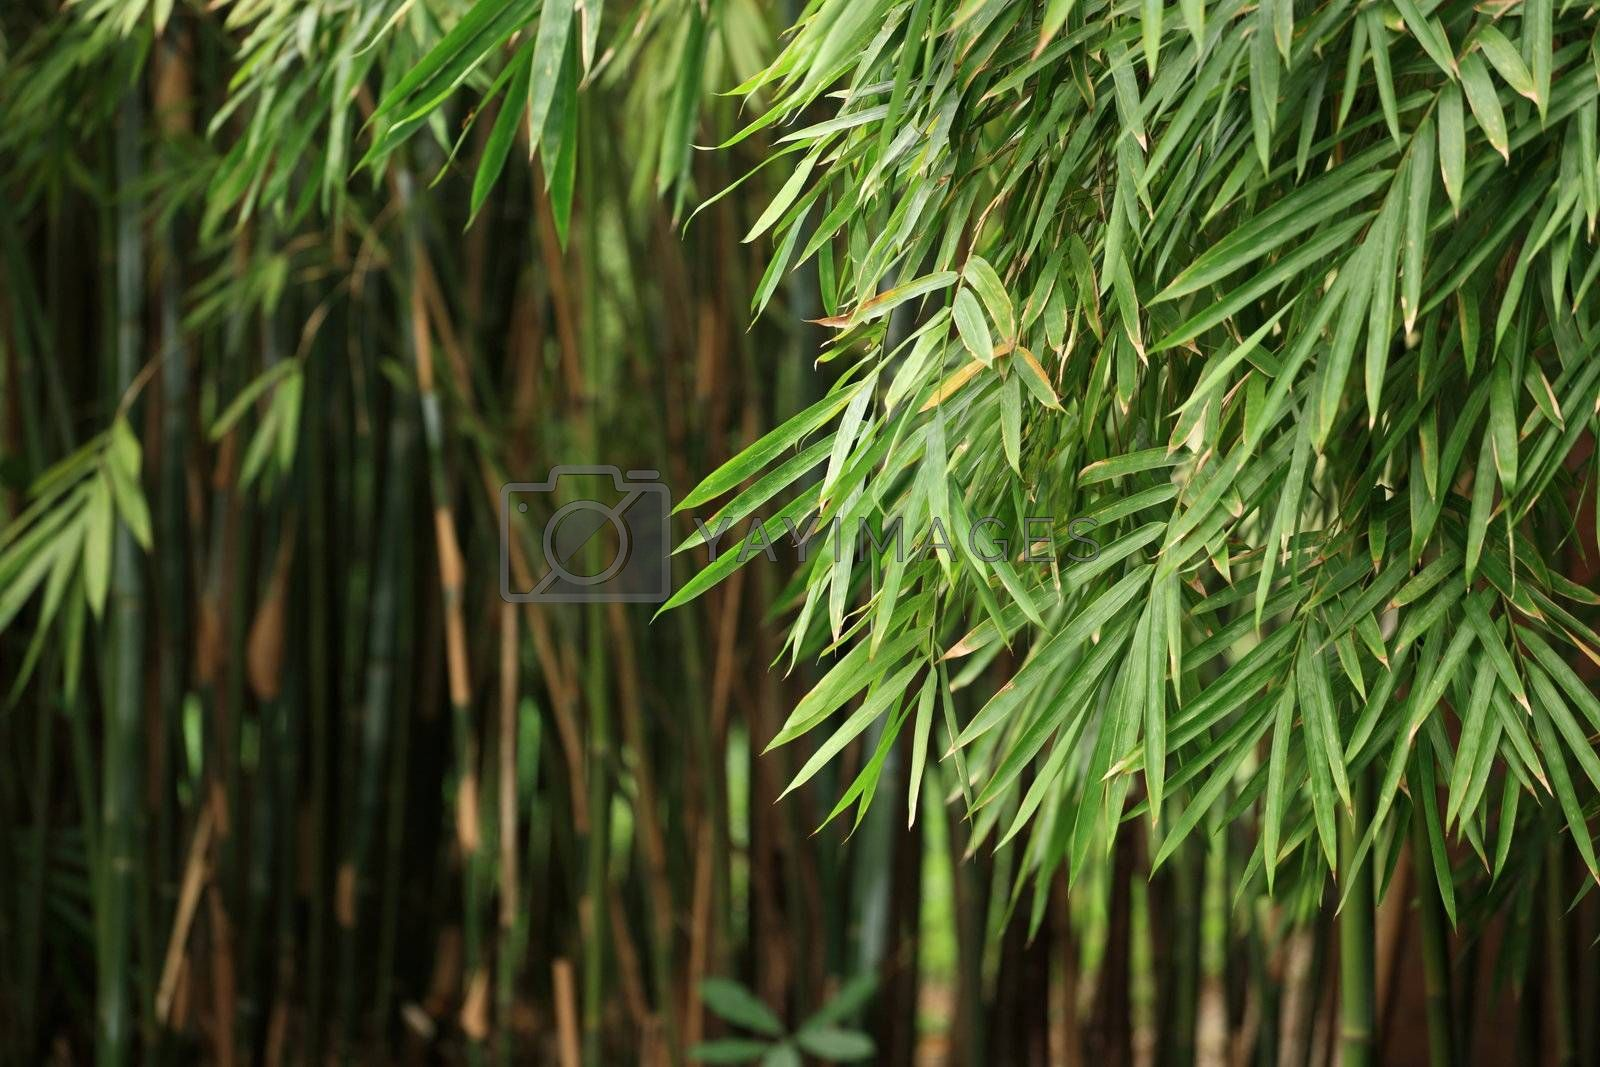 Royalty free image of Bamboo forest by leungchopan